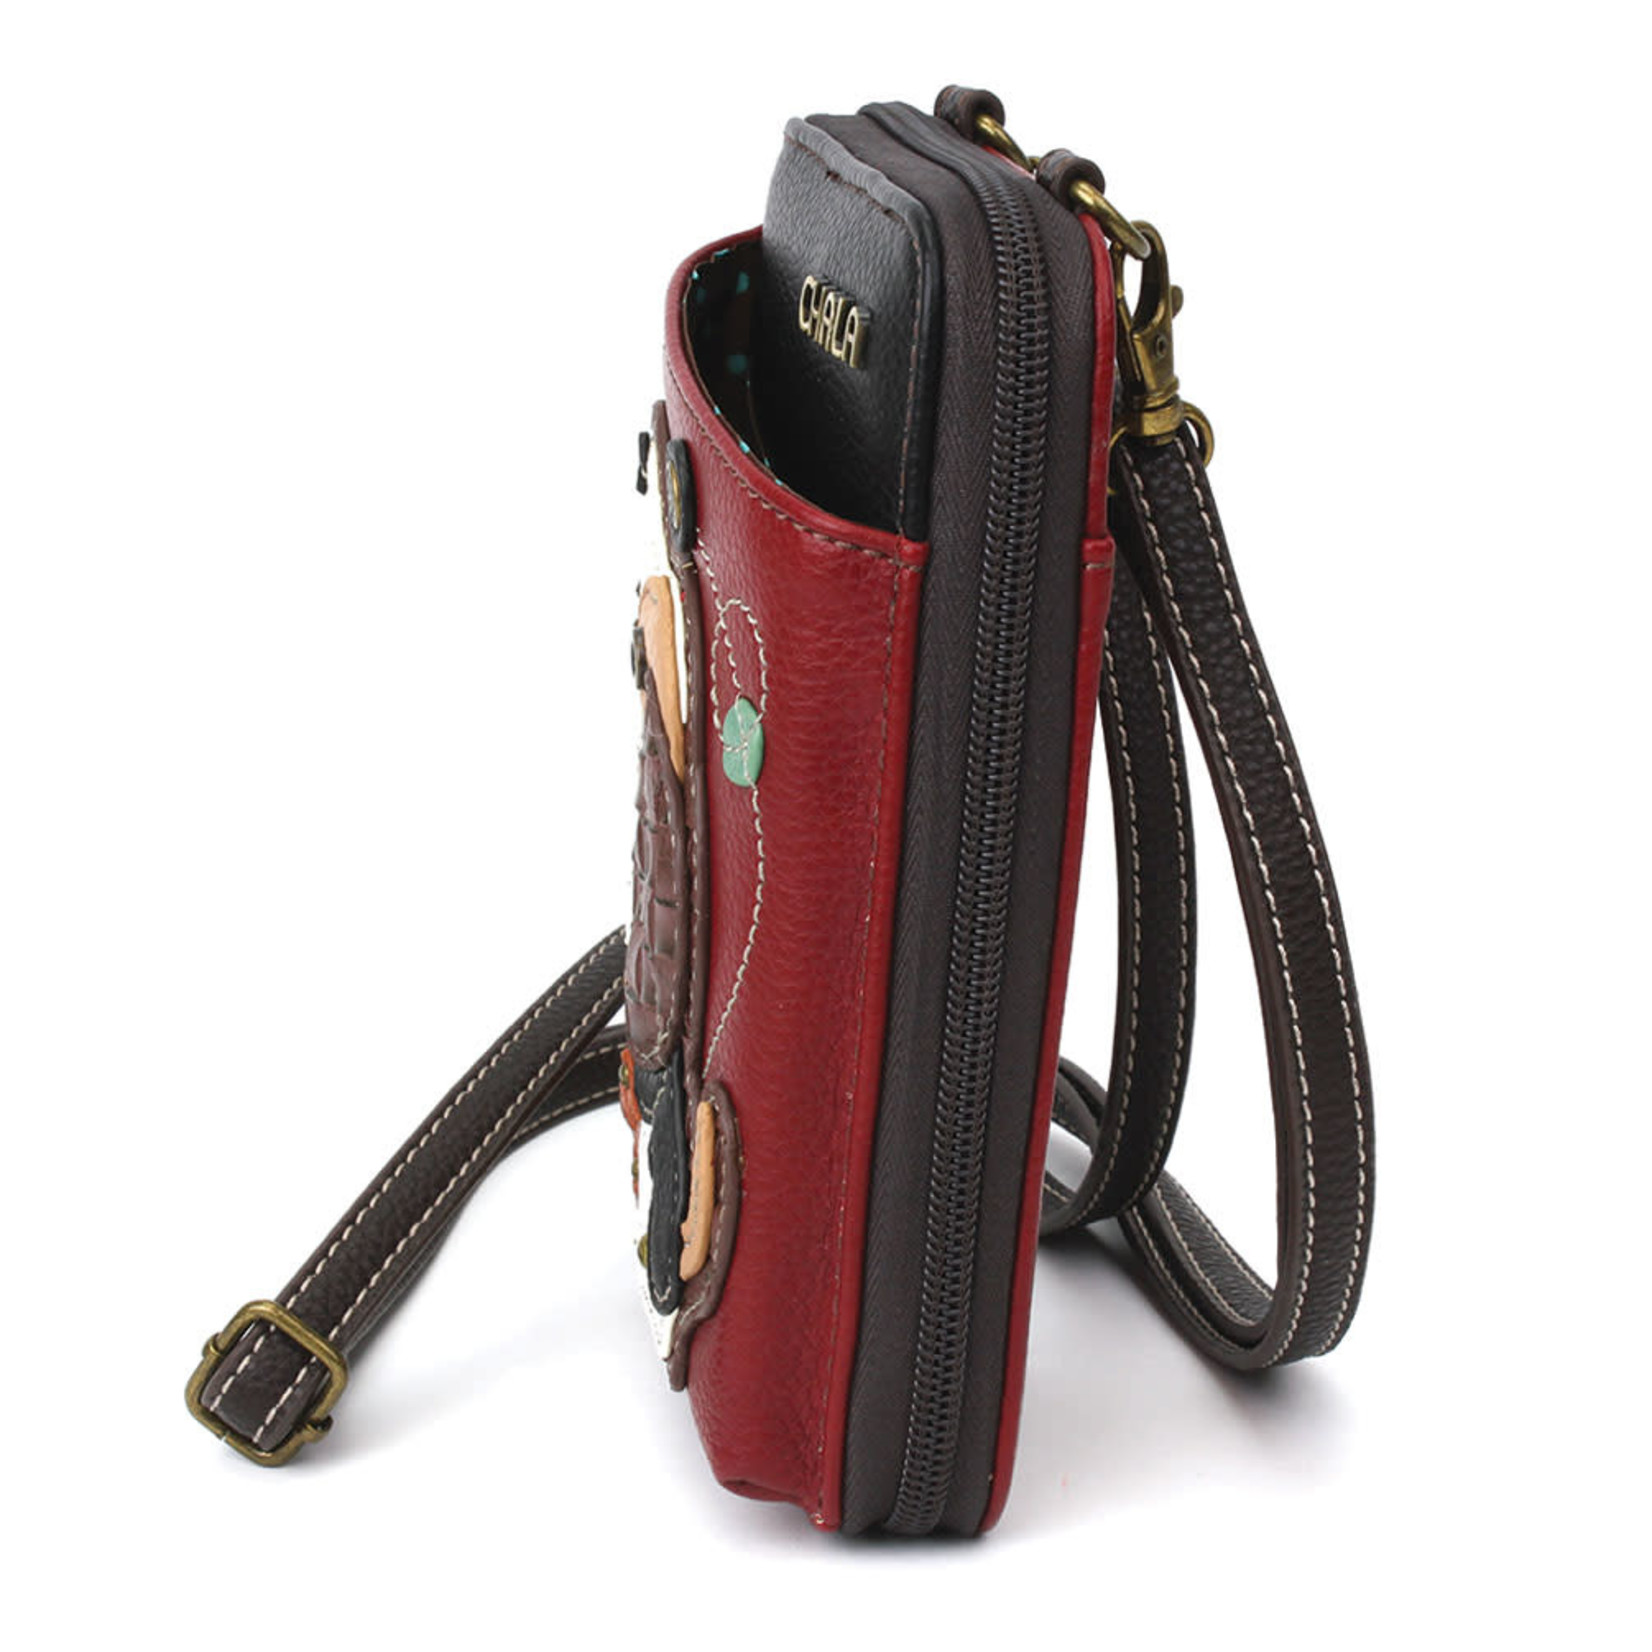 Chala Wallet Crossbody Dog A Gen II